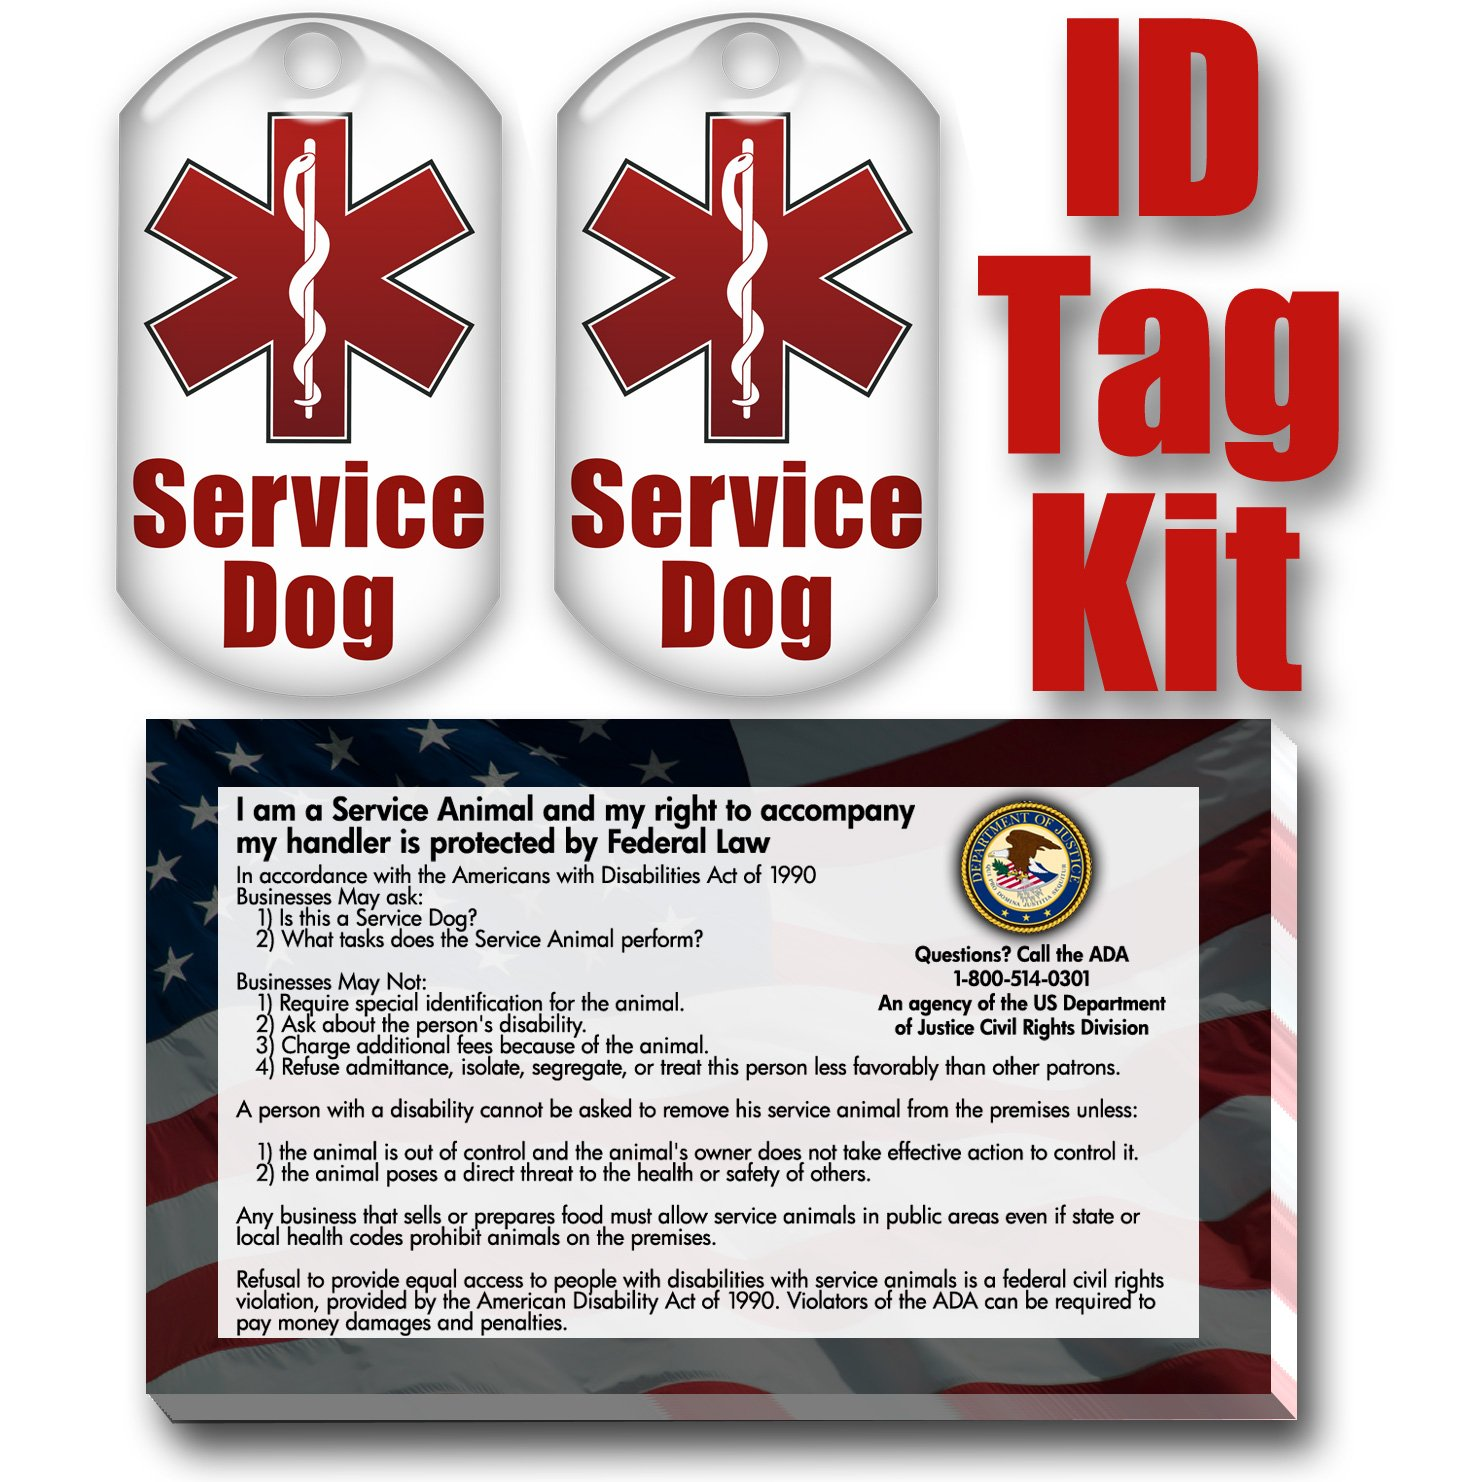 Amazon.com : Service Dog ID Tag Kit with 50 FREE ADA Information ...